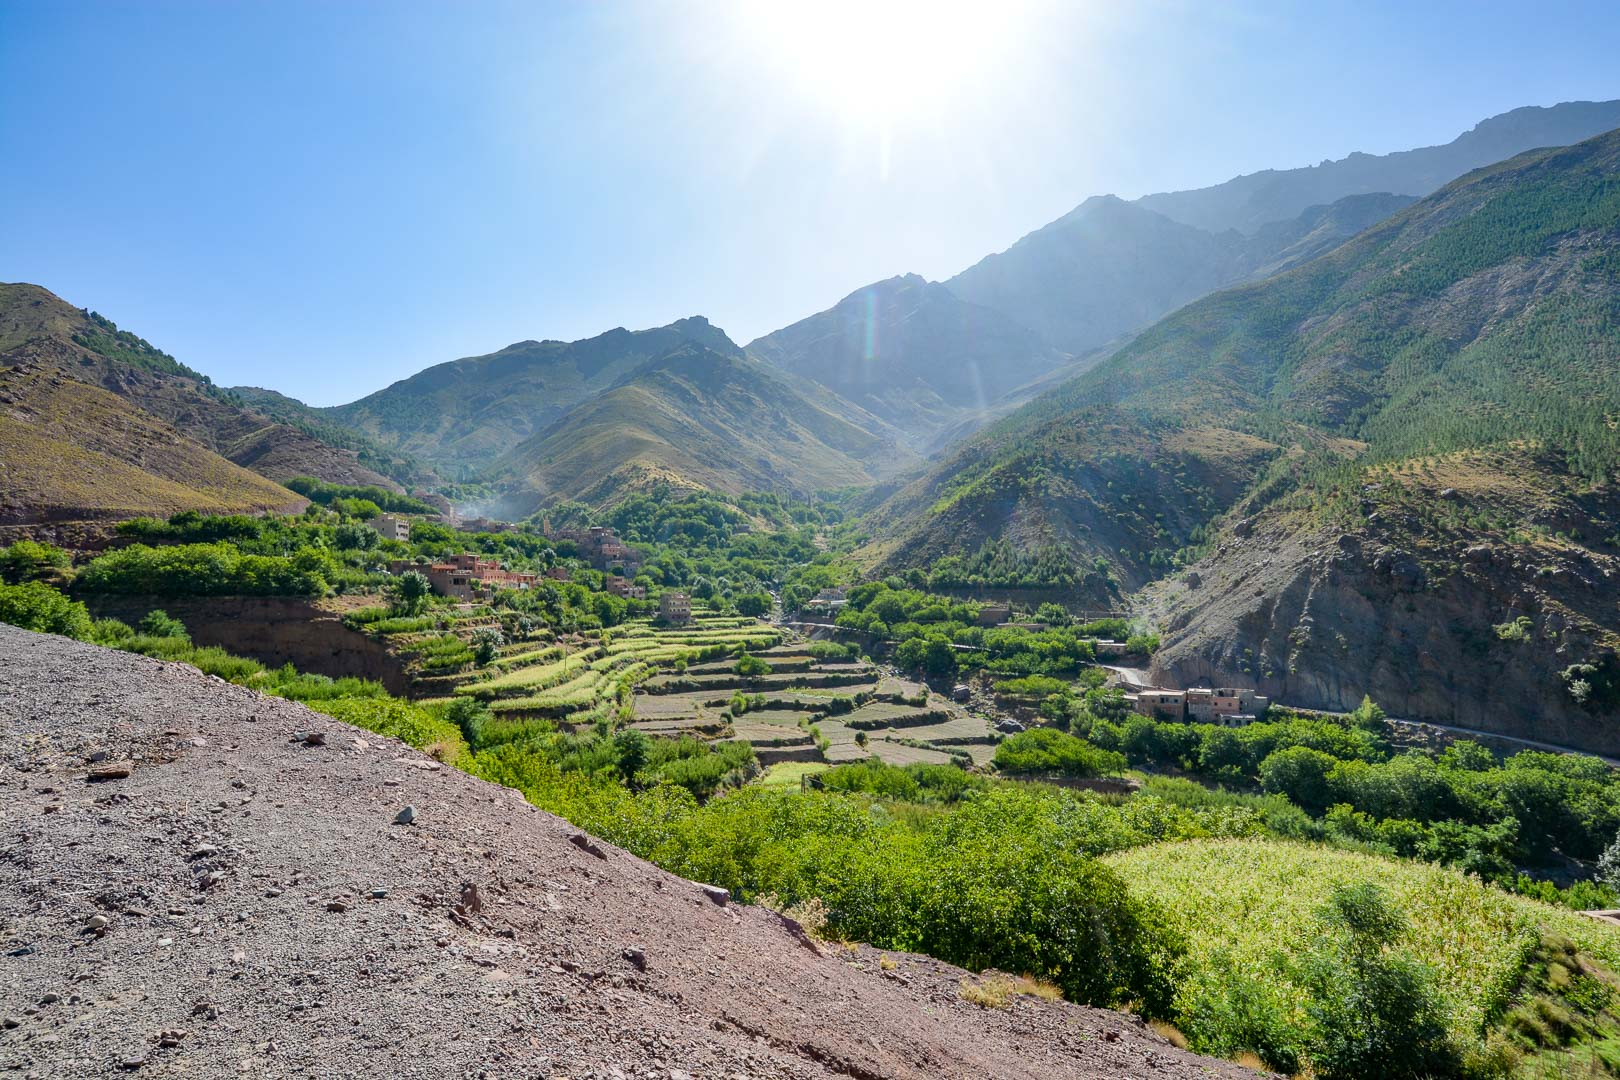 The valleys with their terraced farms are stunning oases in the dry and dusty mountains